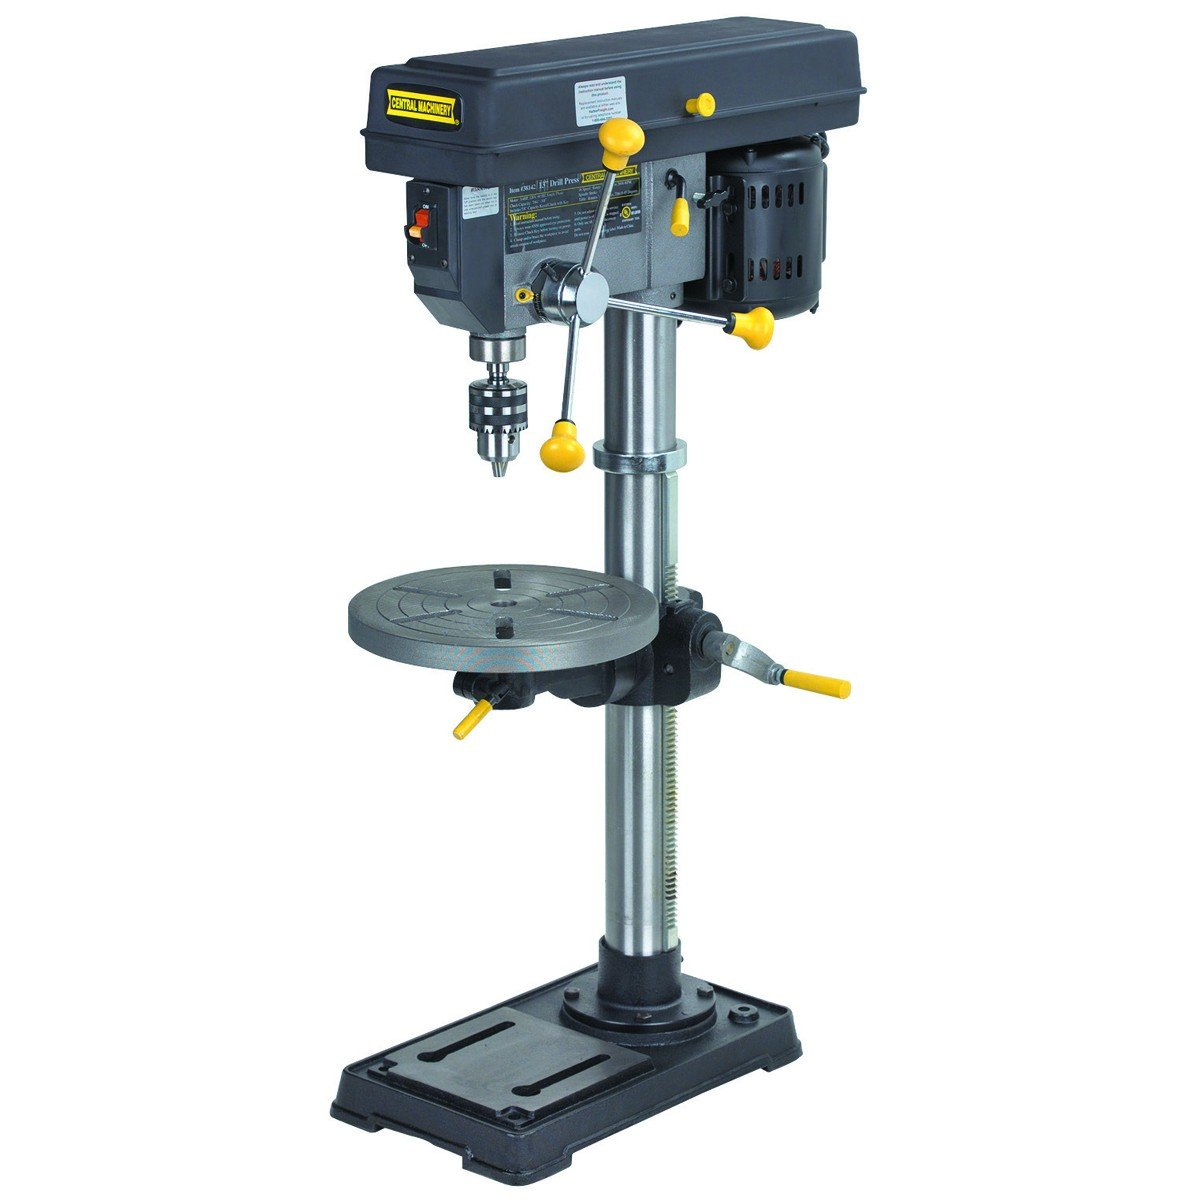 Central Machinery # 38142 16 Speed Heavy Duty Bench Drill Press